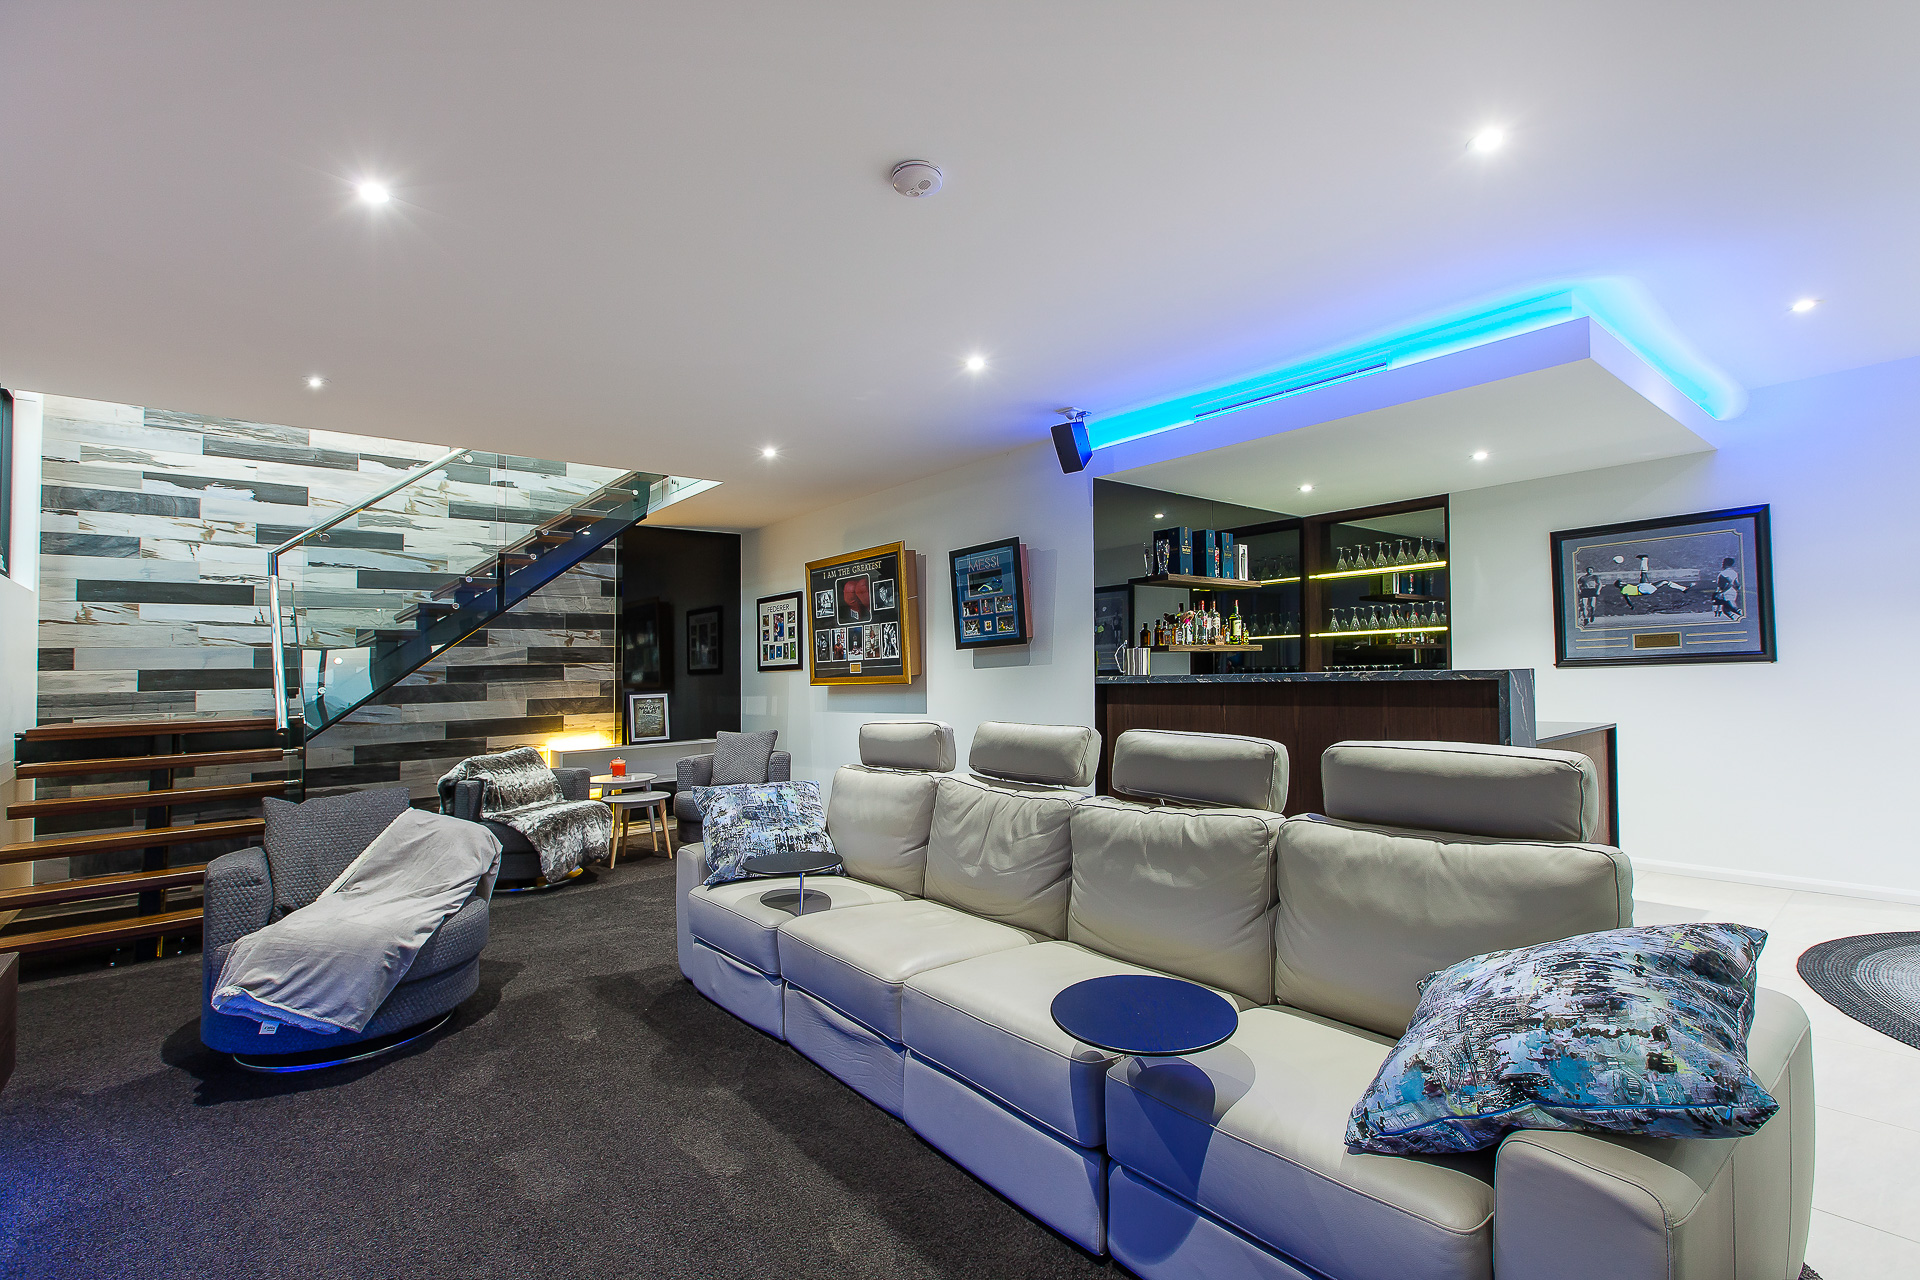 luxury home bar, modern sports room, man cave, men's room, pool room, custom made bar, minka joinery